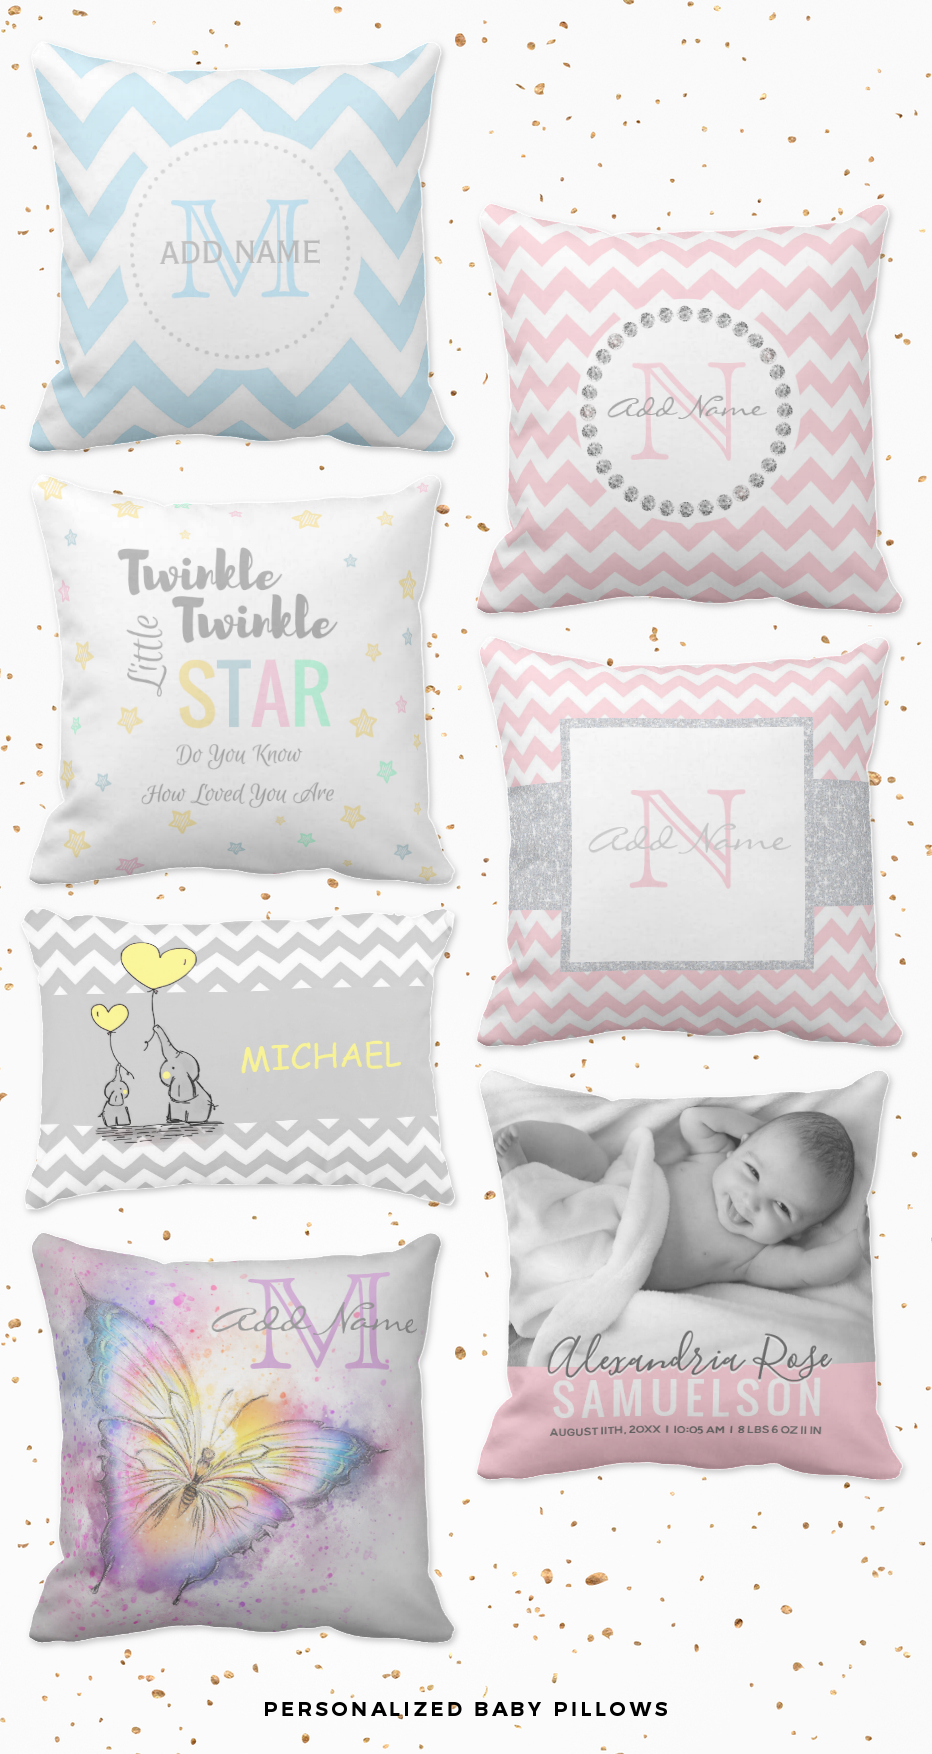 personalized baby pillows for girls